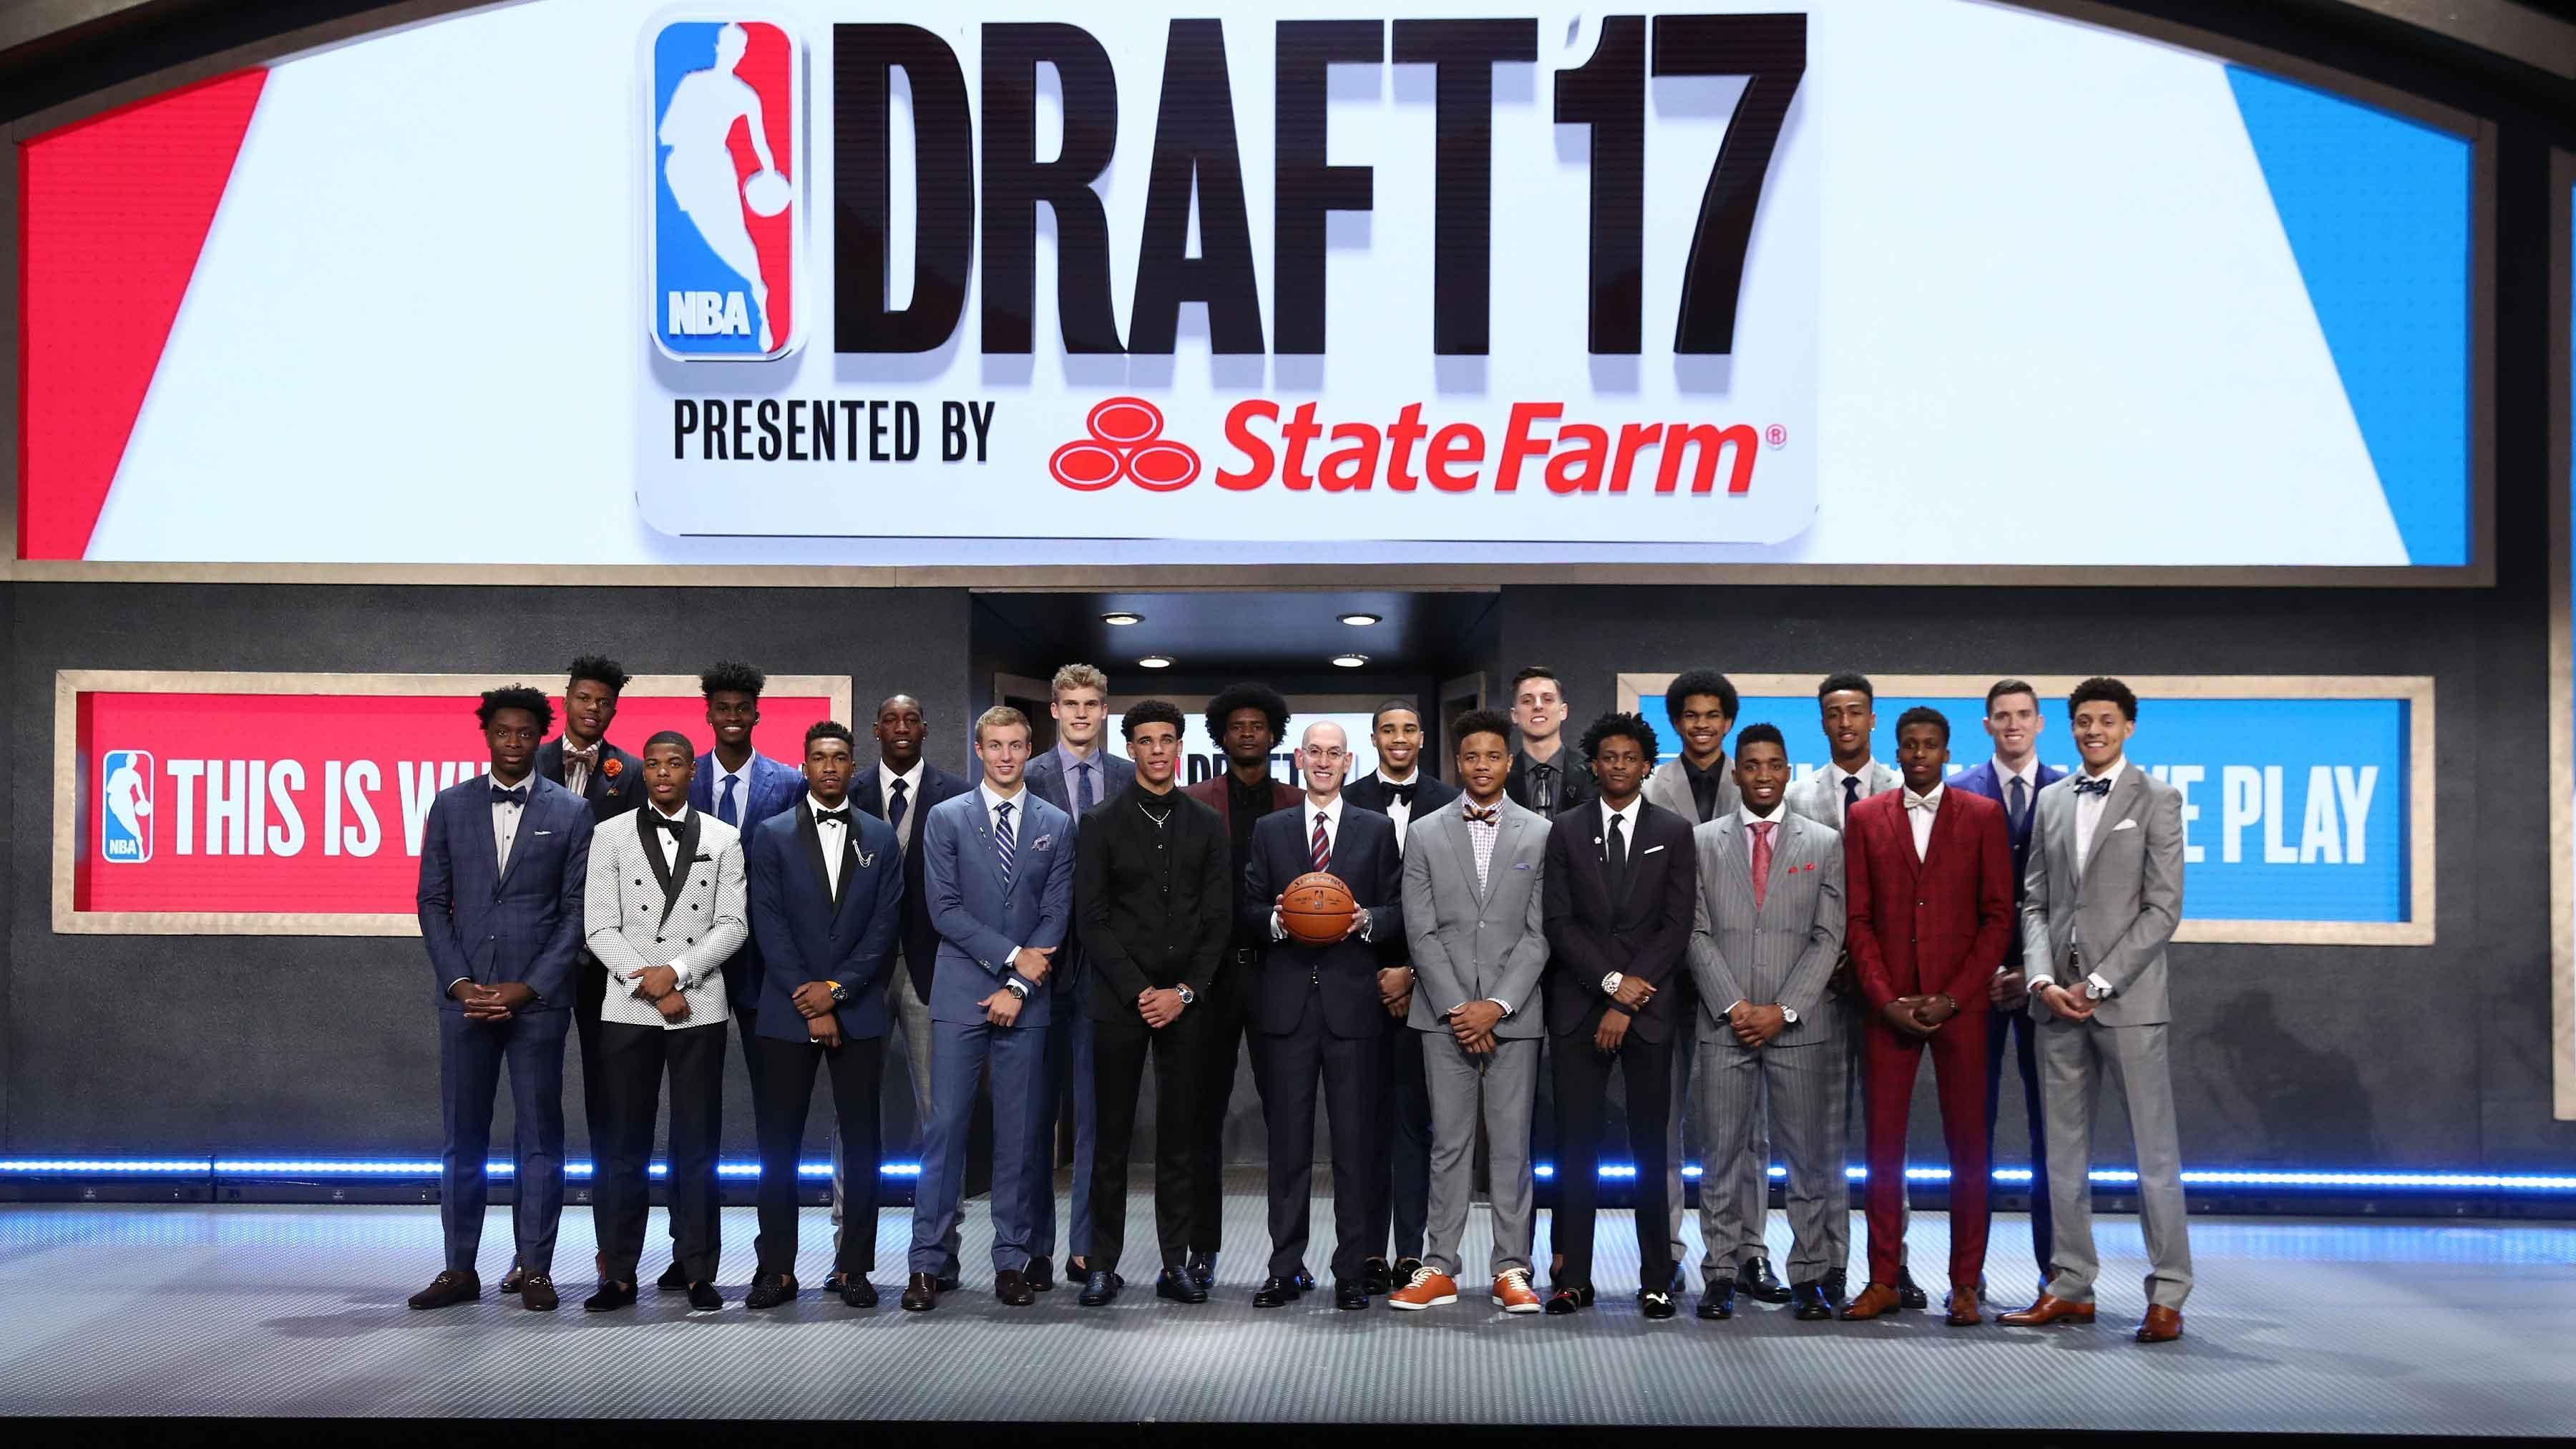 Reactions to the 2017 NBA Draft